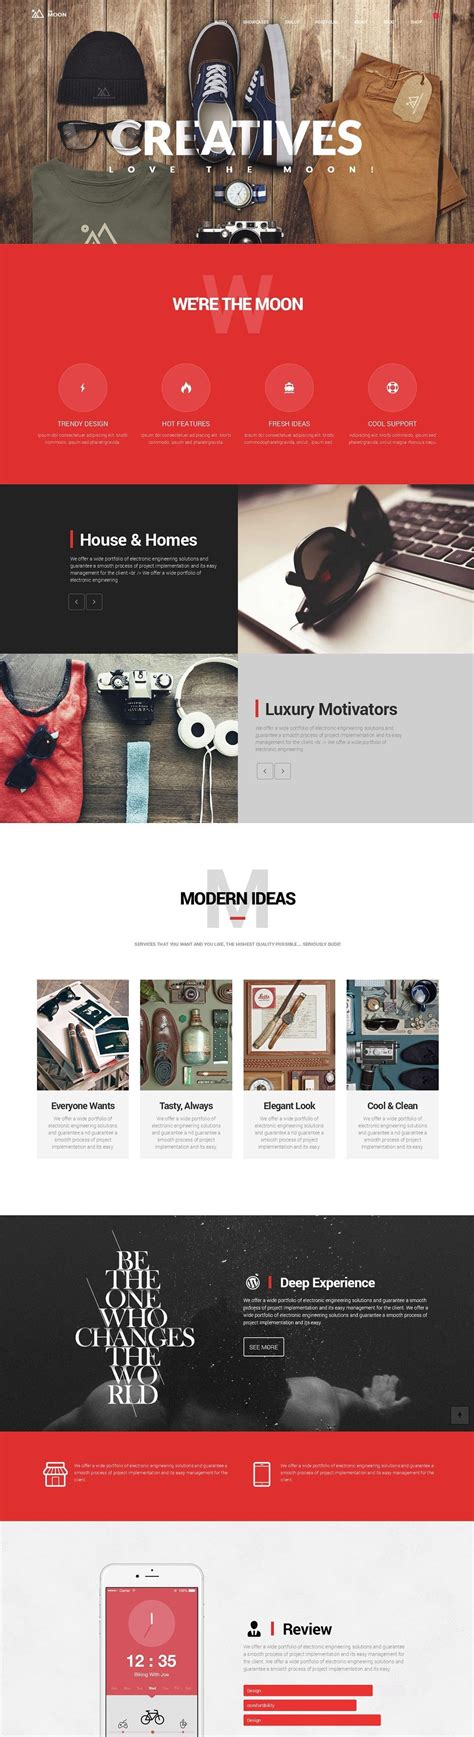 theme wordpress free creative 20 the most creative wordpress themes of 2015